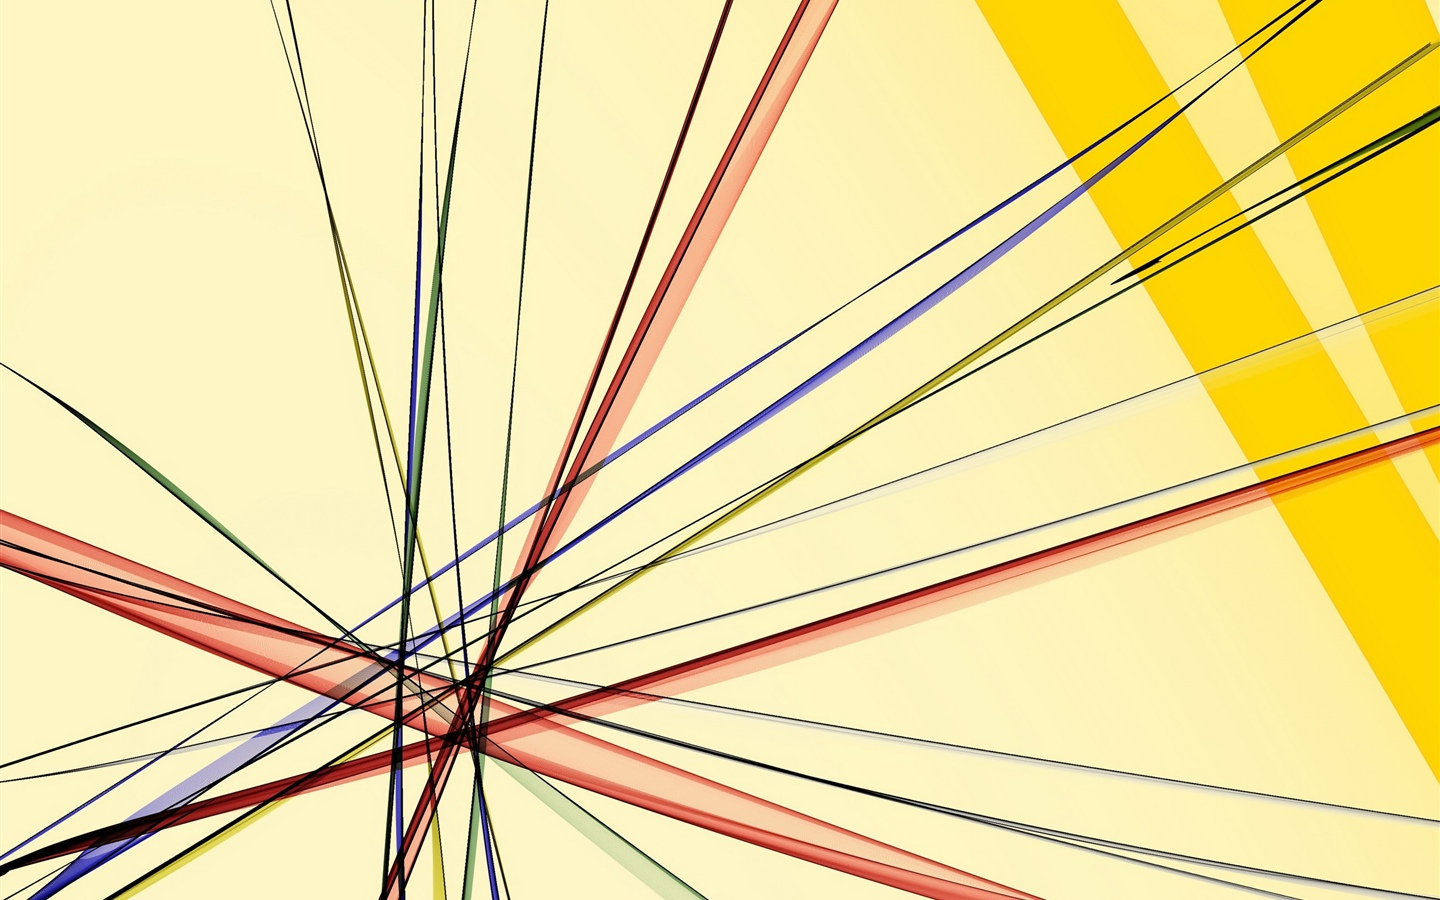 Abstract background, colorful lines 1440x900 wallpaper